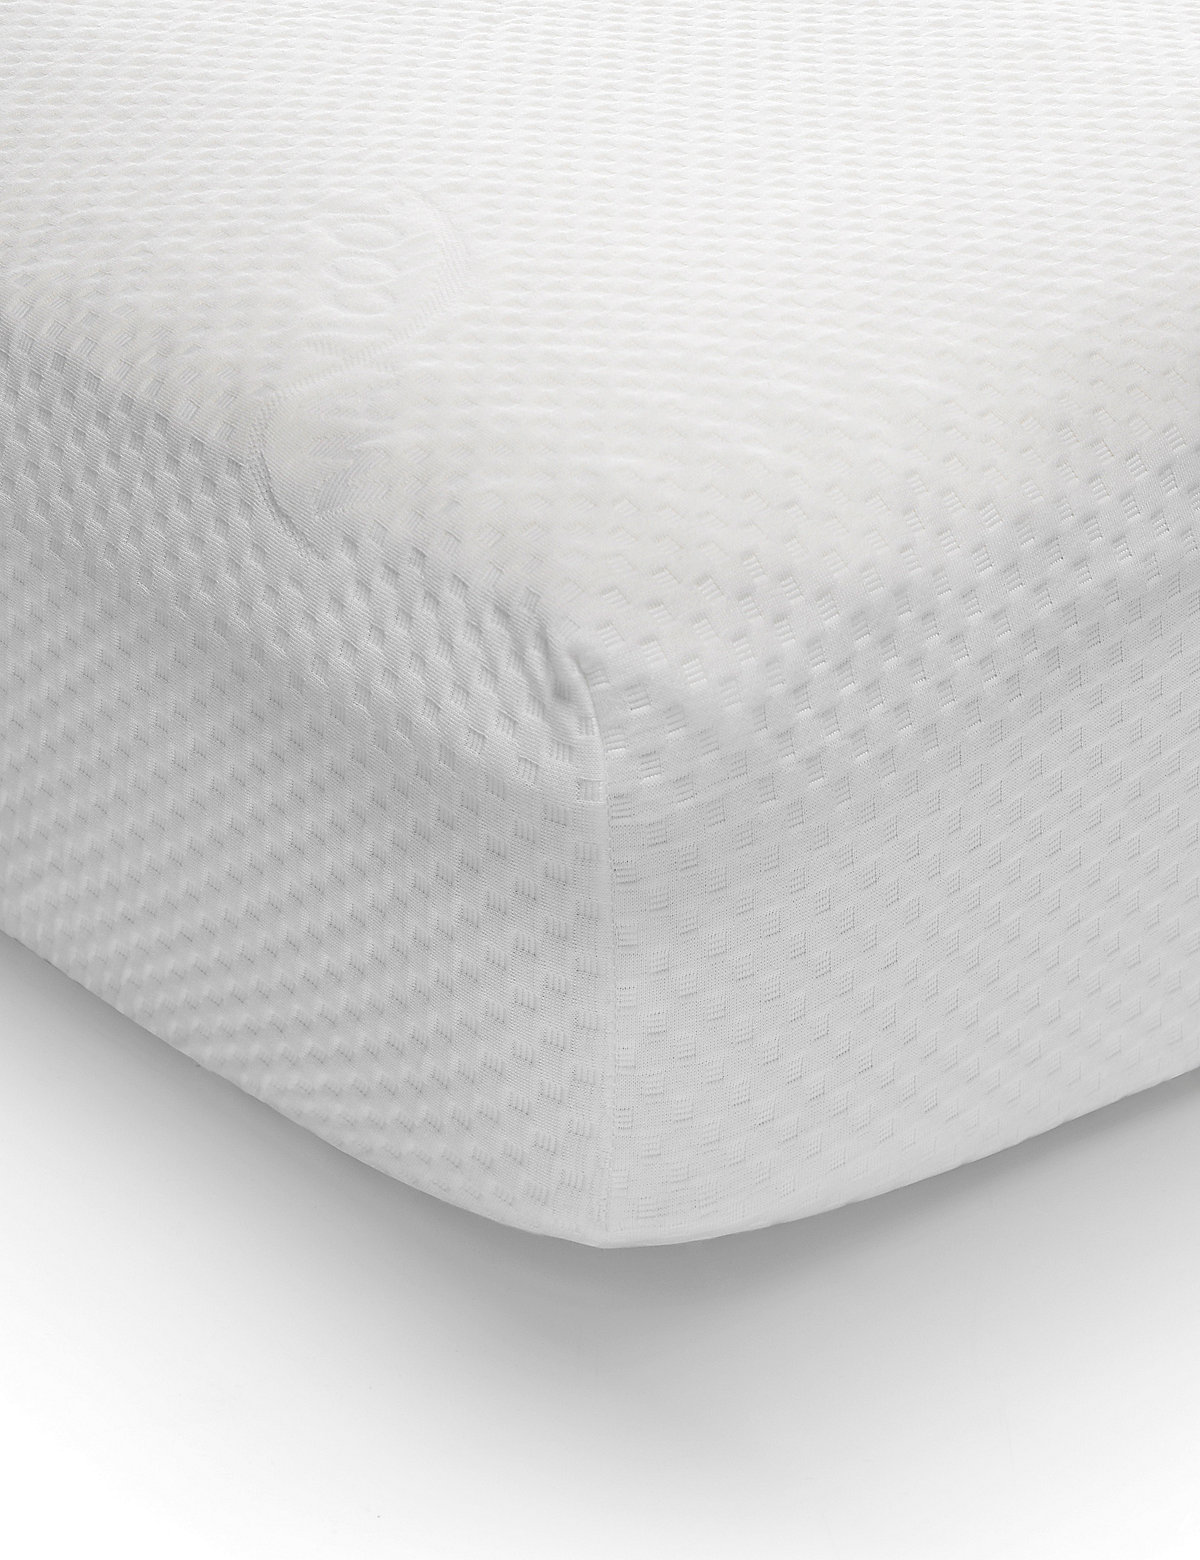 Foam Mattress Topper 355 Value 129 For A King Memory Foam Mattress Bed Mattress Sale